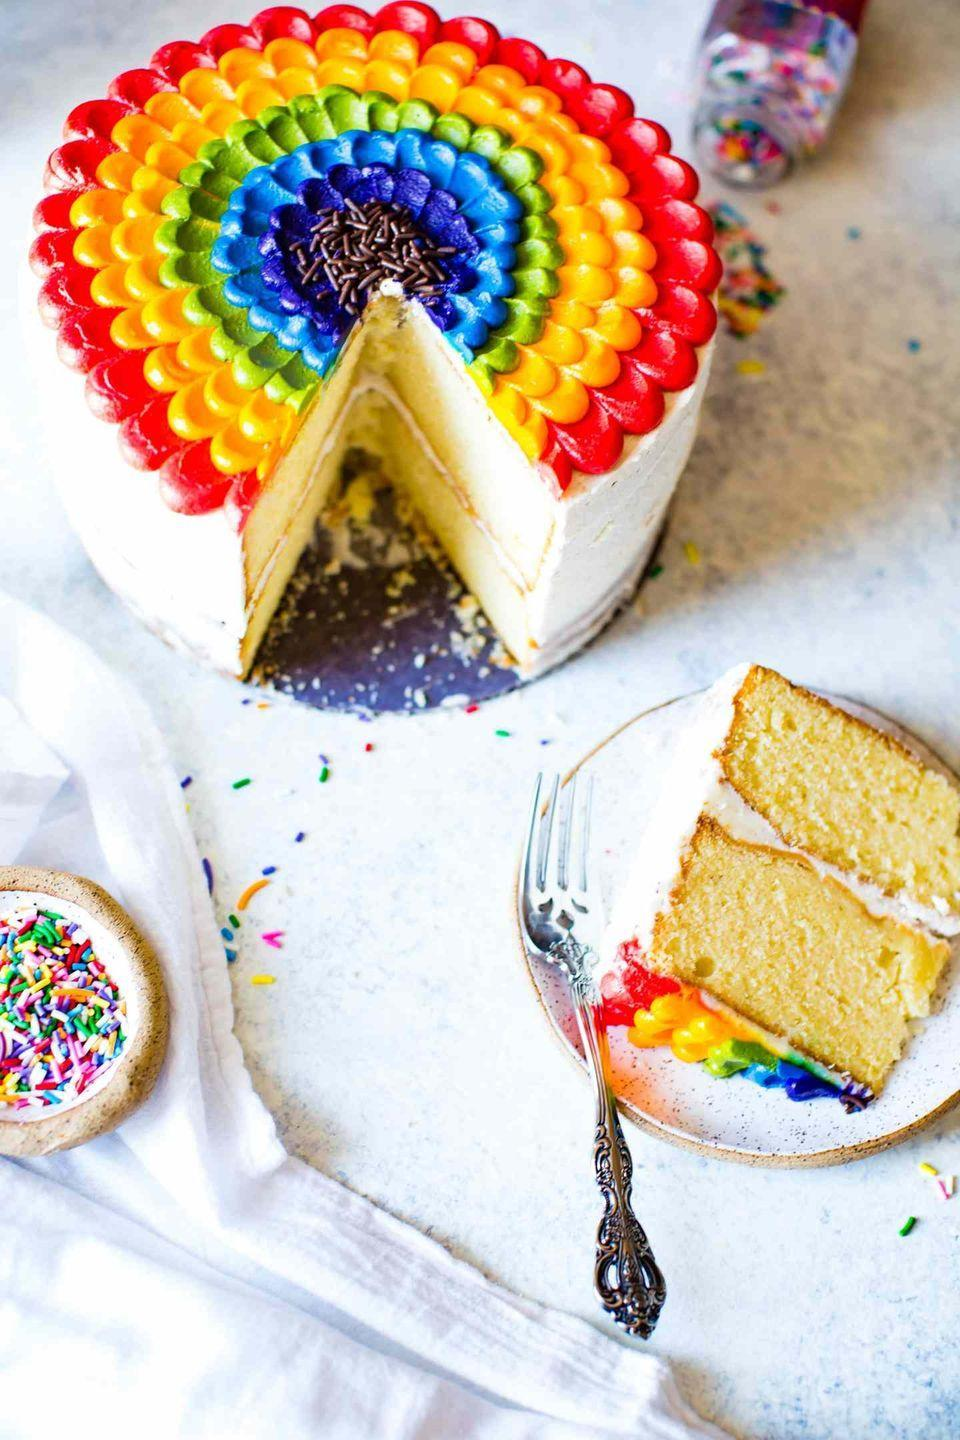 """<p>It's all about the decorations with this rainbow vanilla cake. While the blogger admits the petal design is a little time-consuming, it's still surprisingly easy to create.</p><p><strong>Get the recipe at <a href=""""https://www.butterbeready.com/vanilla-almond-rainbow-petal-cake/"""" rel=""""nofollow noopener"""" target=""""_blank"""" data-ylk=""""slk:Butter Be Ready"""" class=""""link rapid-noclick-resp"""">Butter Be Ready</a>.</strong></p><p><strong><a class=""""link rapid-noclick-resp"""" href=""""https://go.redirectingat.com?id=74968X1596630&url=https%3A%2F%2Fwww.walmart.com%2Fsearch%2F%3Fquery%3Dpiping%2Bbags&sref=https%3A%2F%2Fwww.thepioneerwoman.com%2Ffood-cooking%2Fmeals-menus%2Fg36421919%2Frainbow-recipes%2F"""" rel=""""nofollow noopener"""" target=""""_blank"""" data-ylk=""""slk:SHOP PIPING BAGS"""">SHOP PIPING BAGS</a><br></strong></p>"""